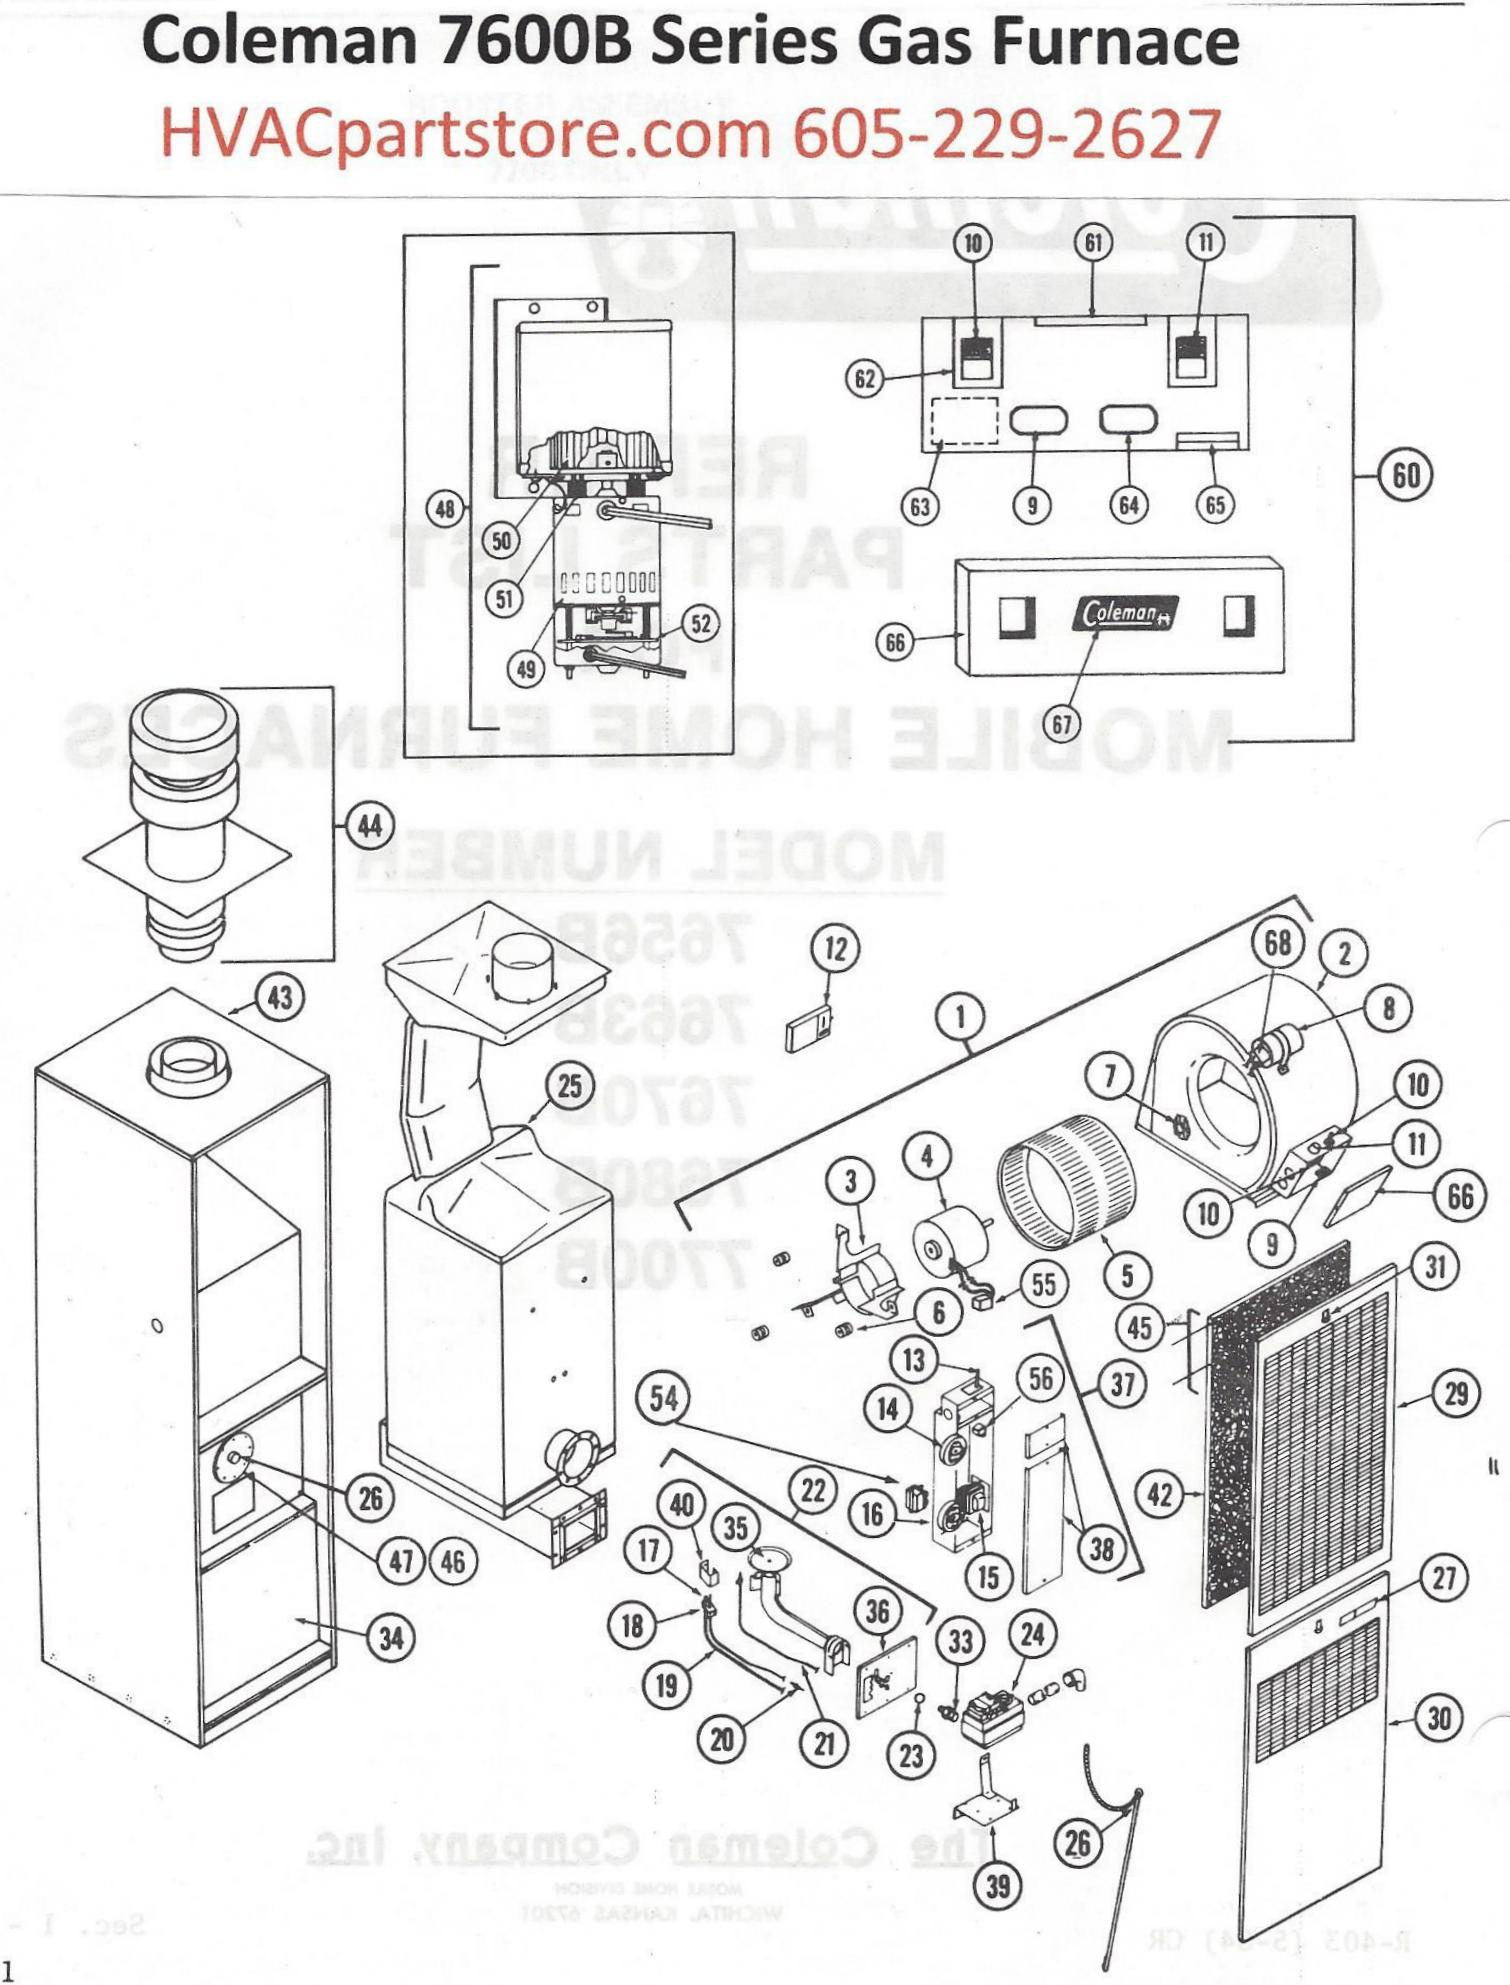 7600BDiagram?3087977773874111912 7656b856 coleman gas furnace parts hvacpartstore coleman furnace wiring diagram at bayanpartner.co